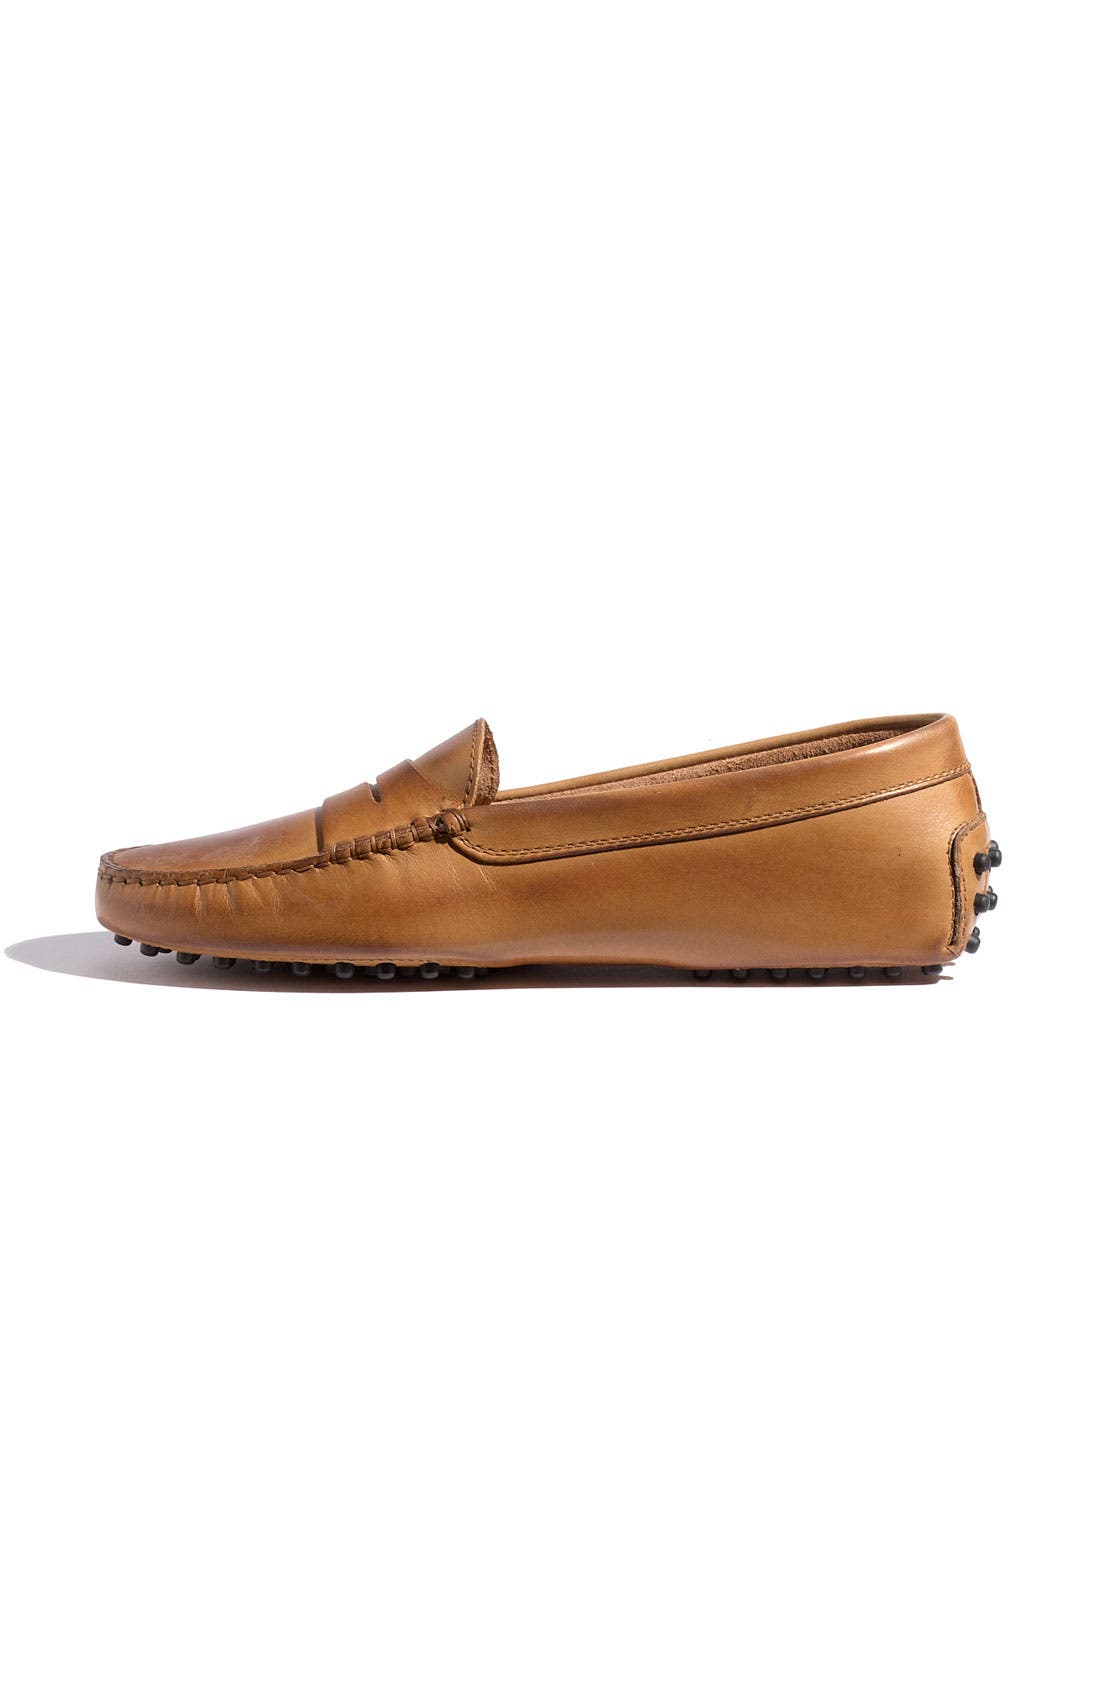 'Gommini' Driving Moccasin,                             Alternate thumbnail 2, color,                             Brown